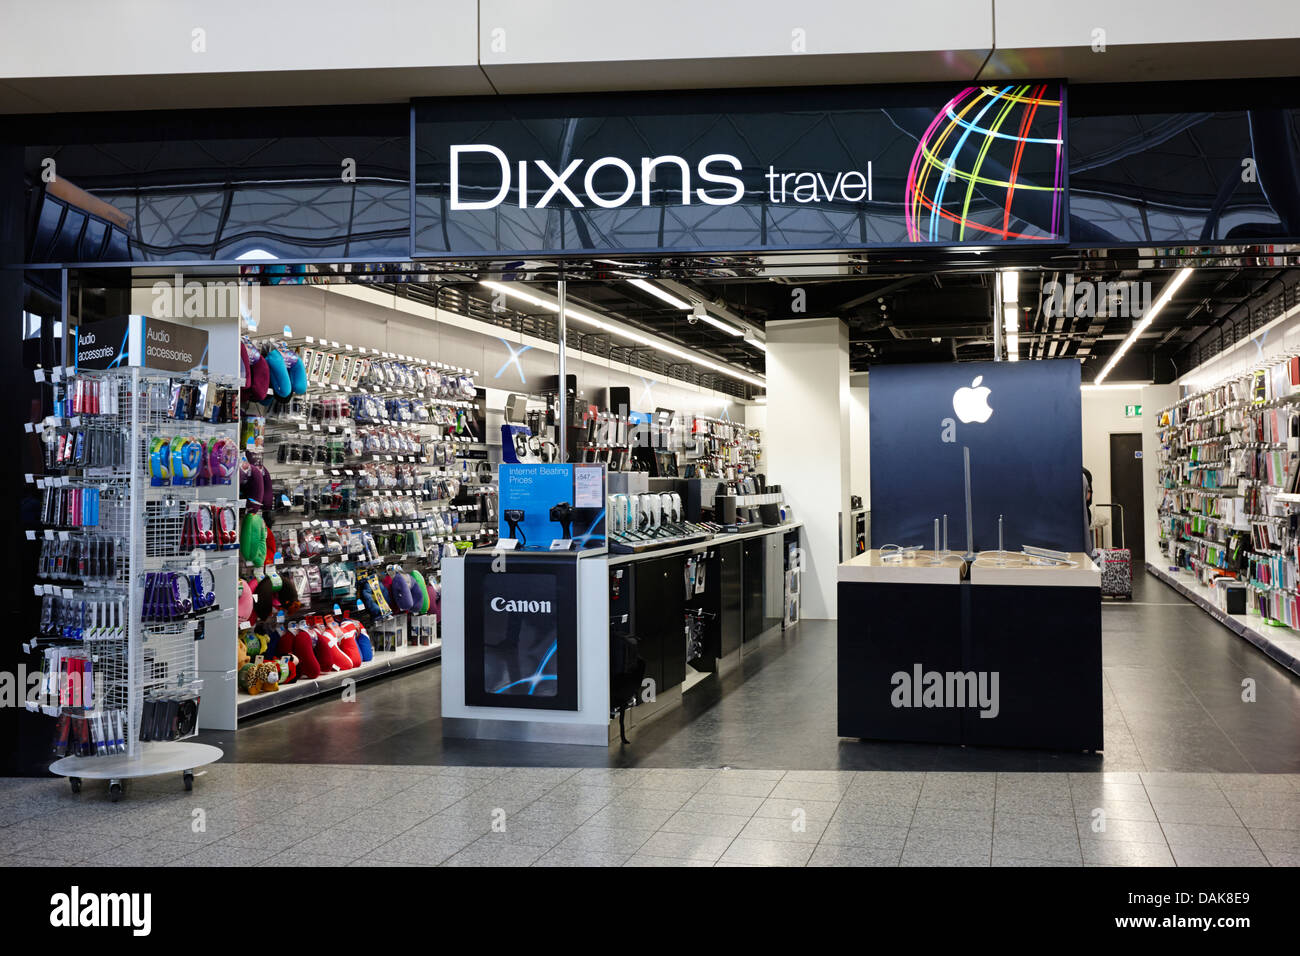 Dixons Reise speichern London Stansted Flughafen Essex, England uk Stockbild